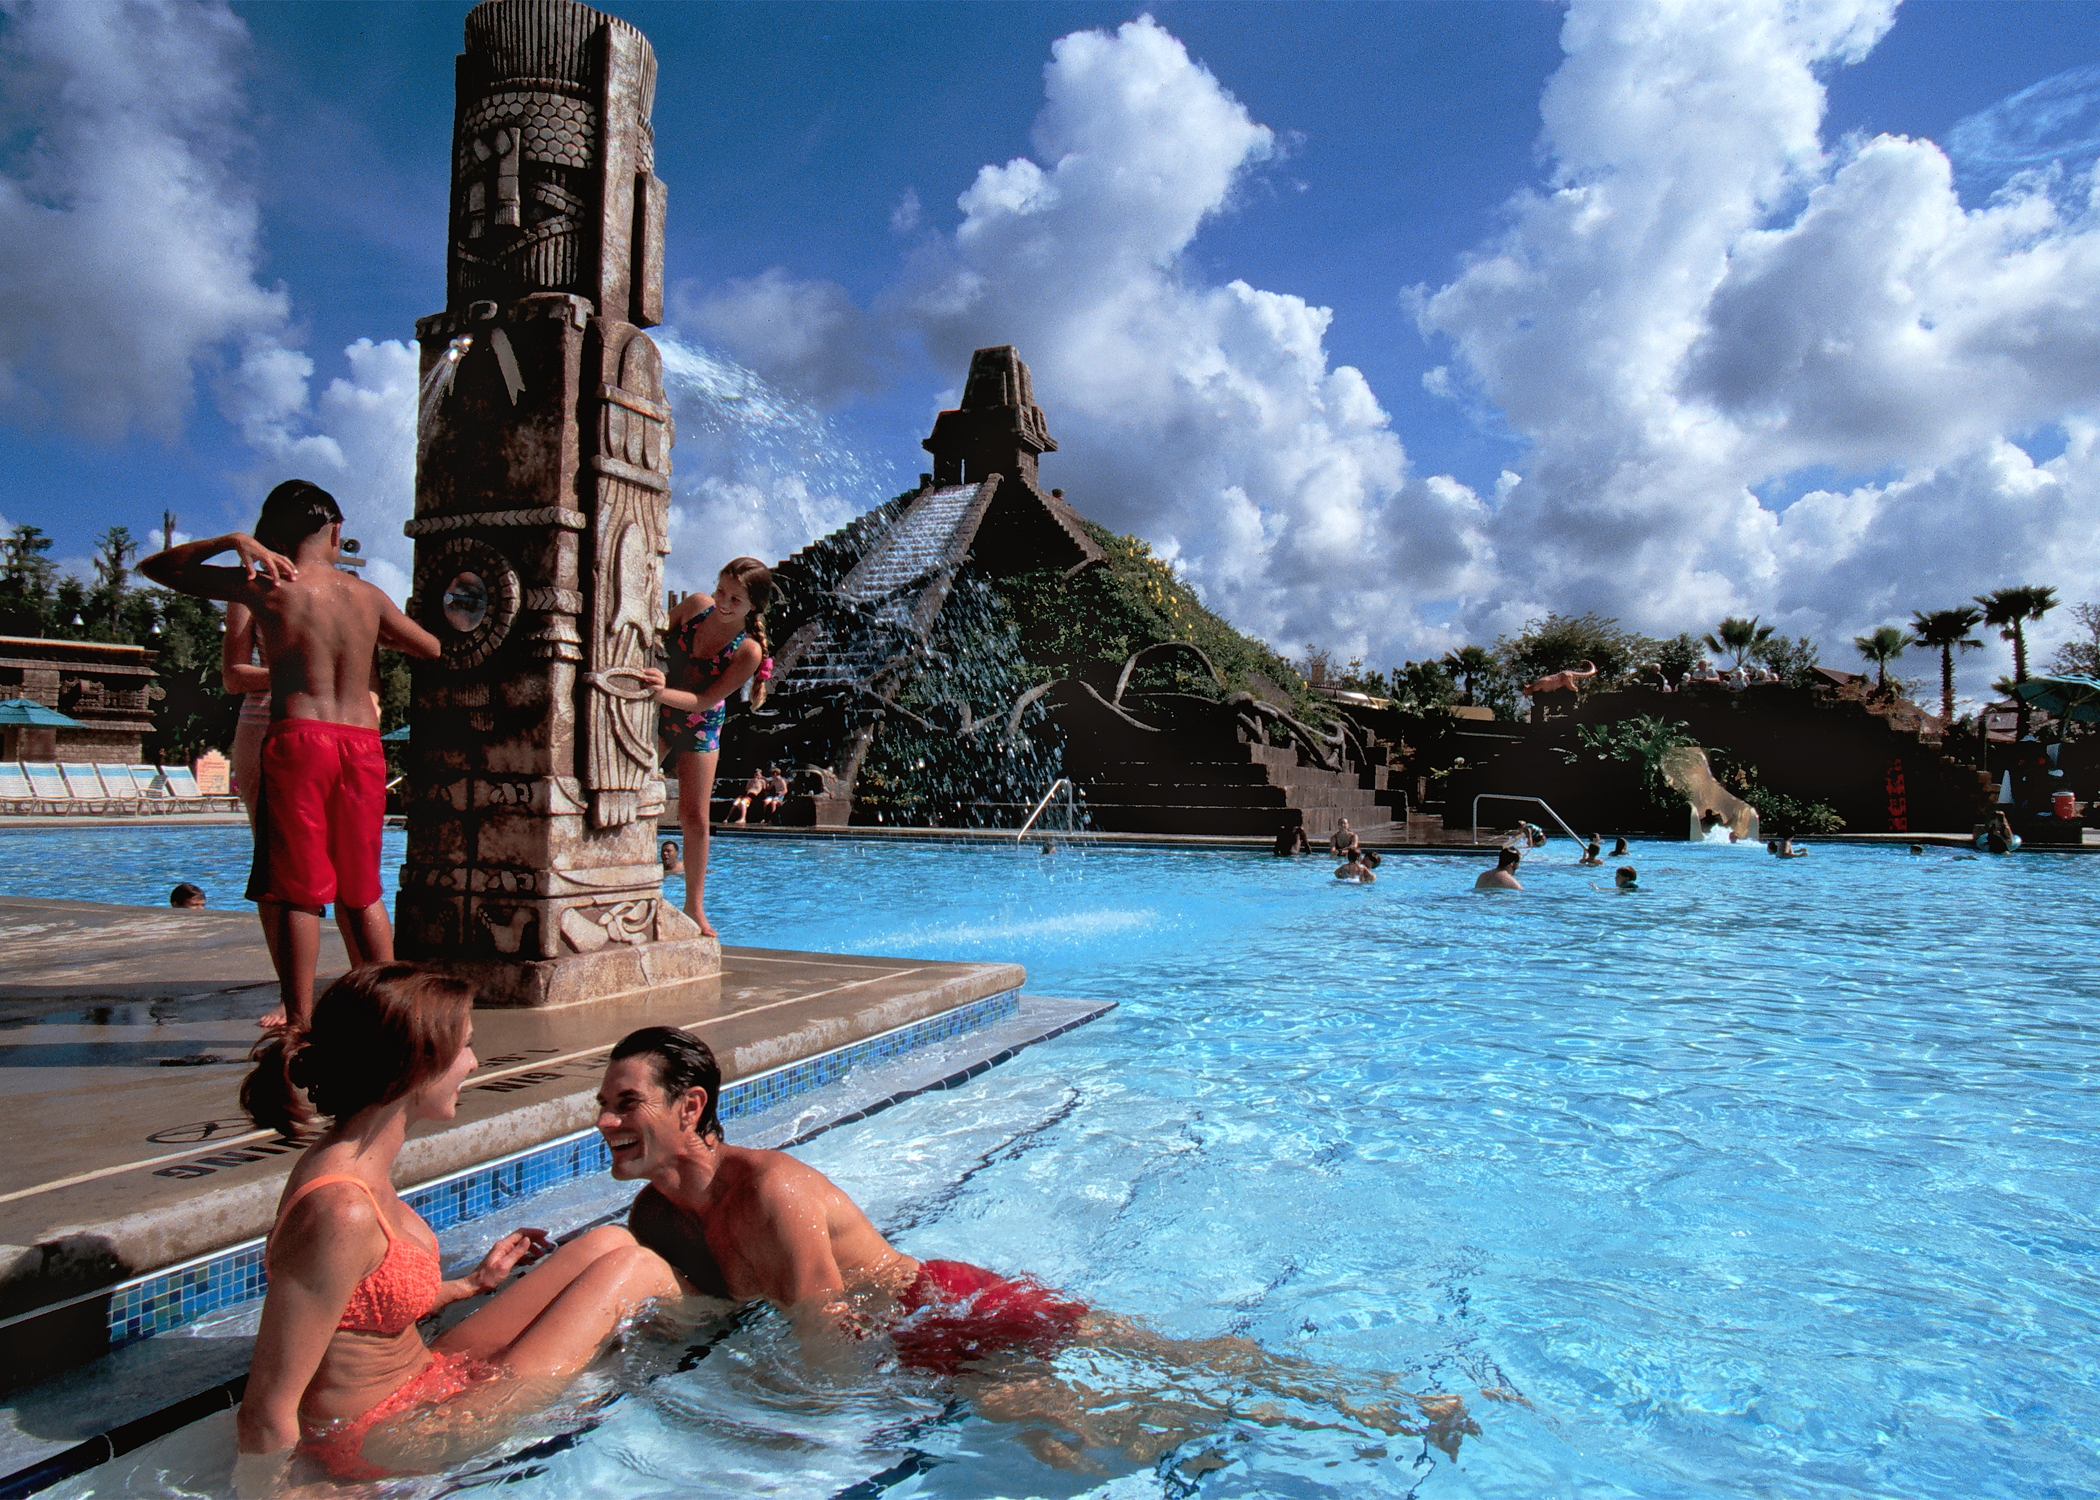 Summer Discounts For Florida Residents At The Walt Disney